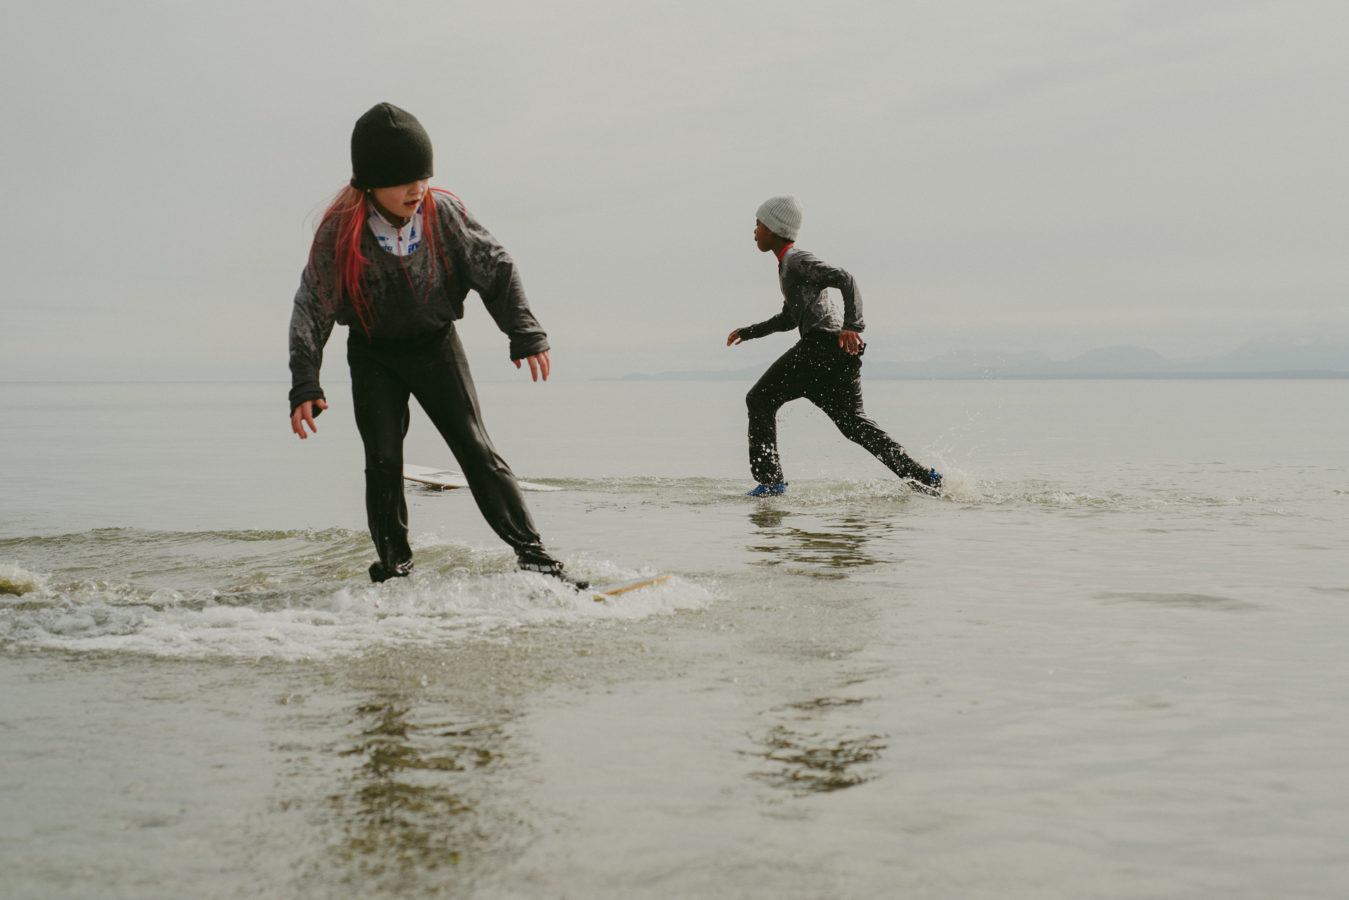 two kids skim boarding in winter clothes and toques